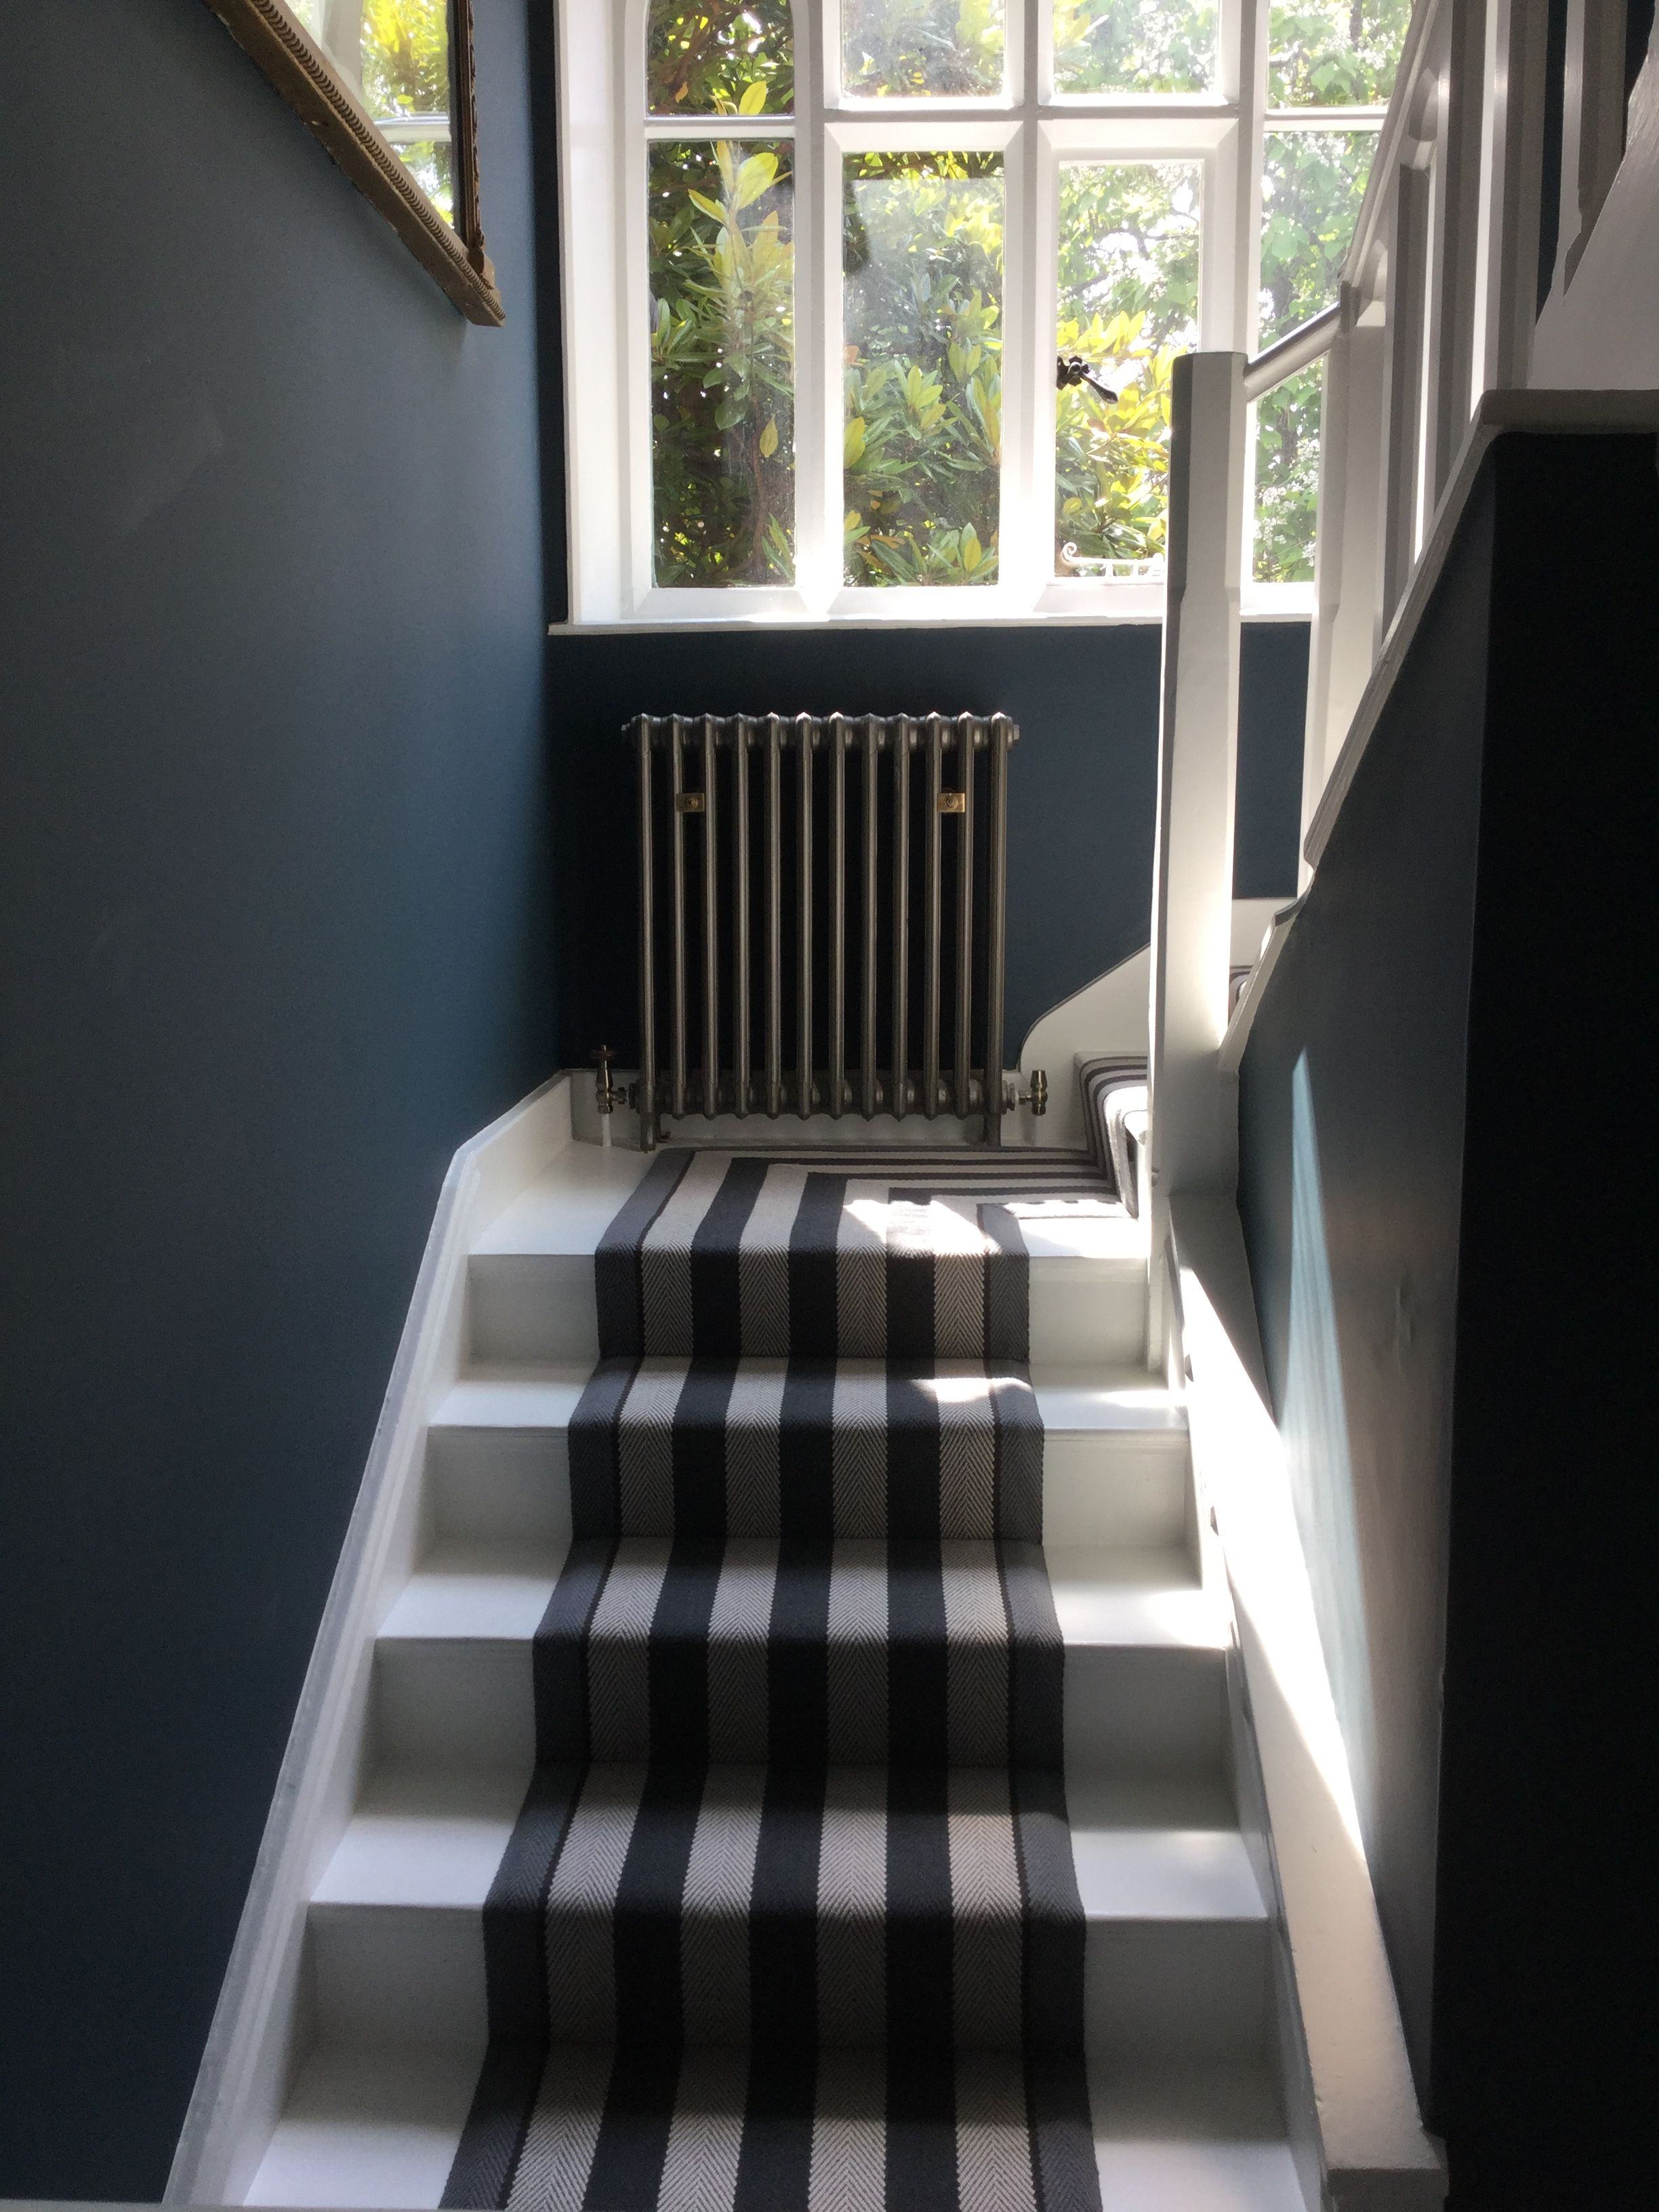 Farrow And Ball Hague Blue Walls And Strong White Woodwork Roger